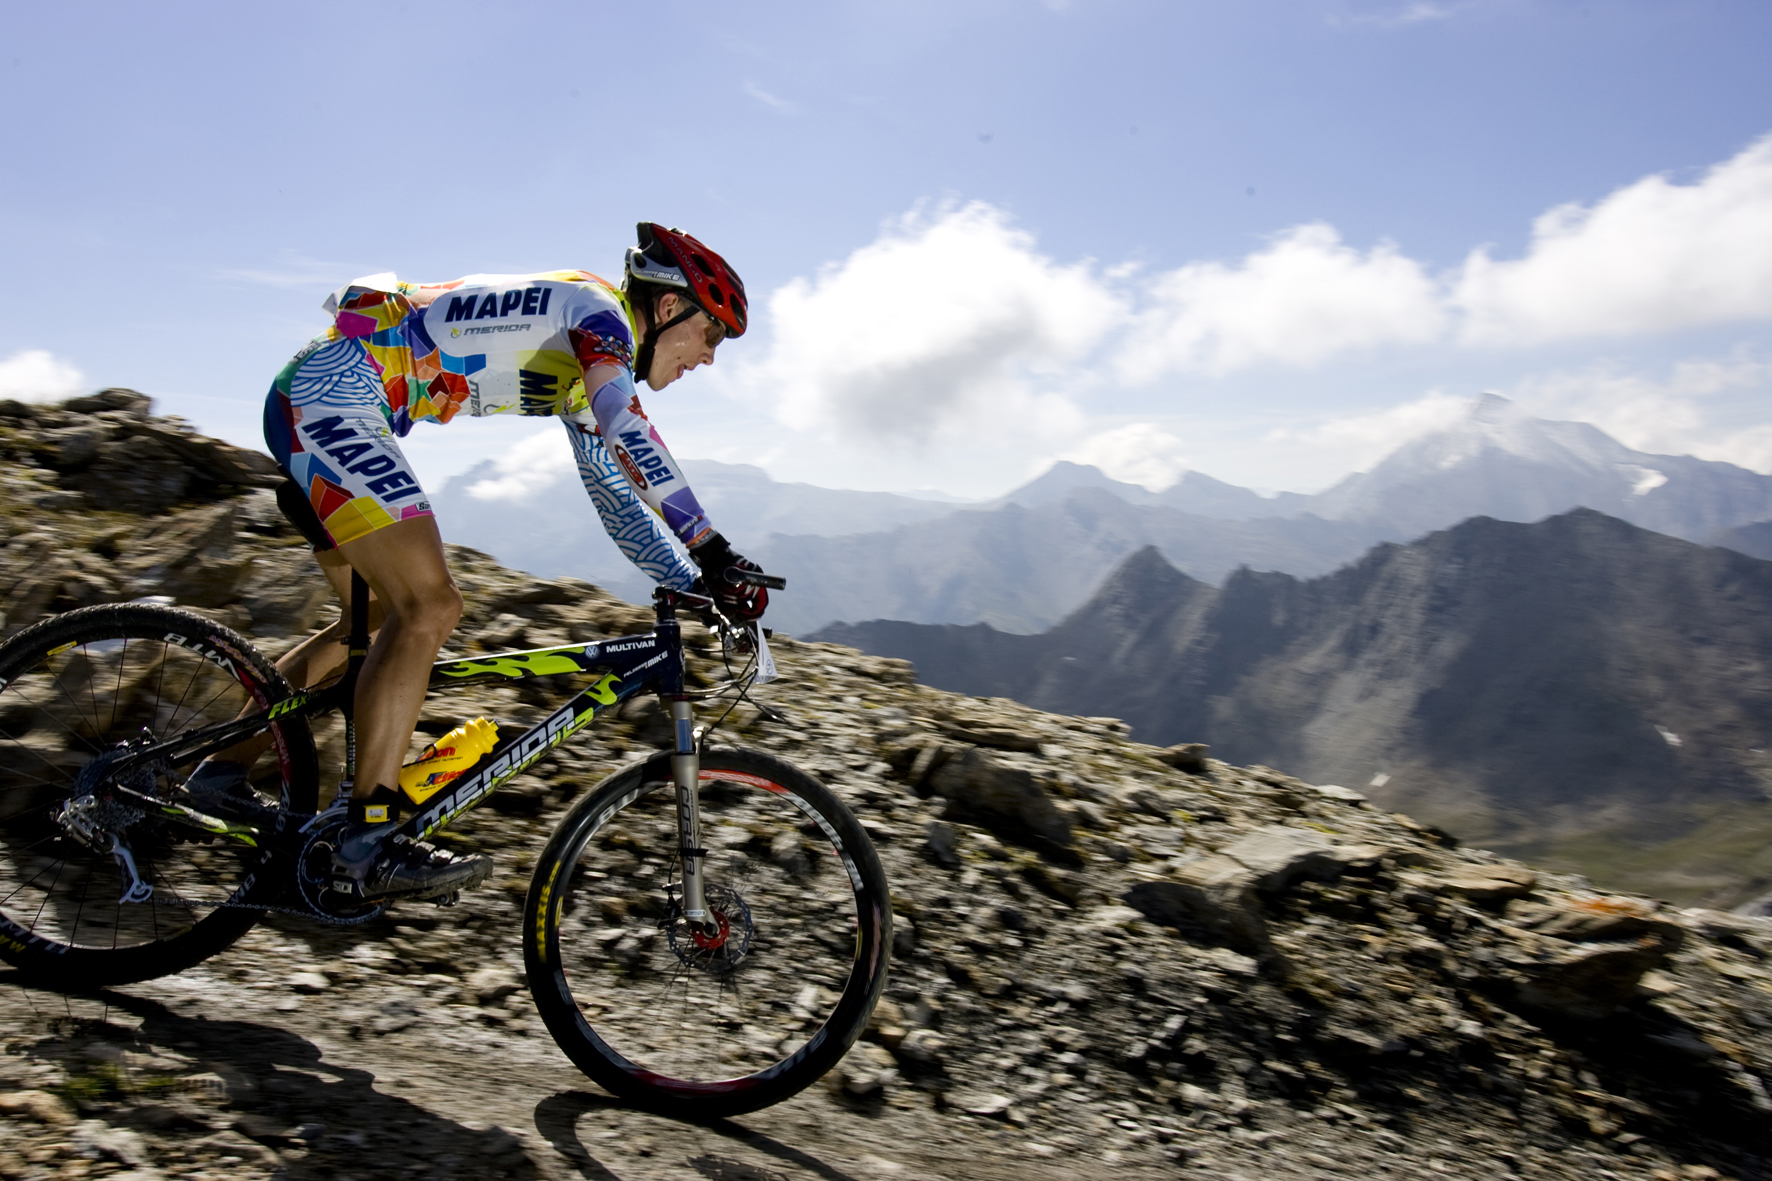 Location: Ischgl (Austria) Ironbike 2007 Photo: Marco Toniolo